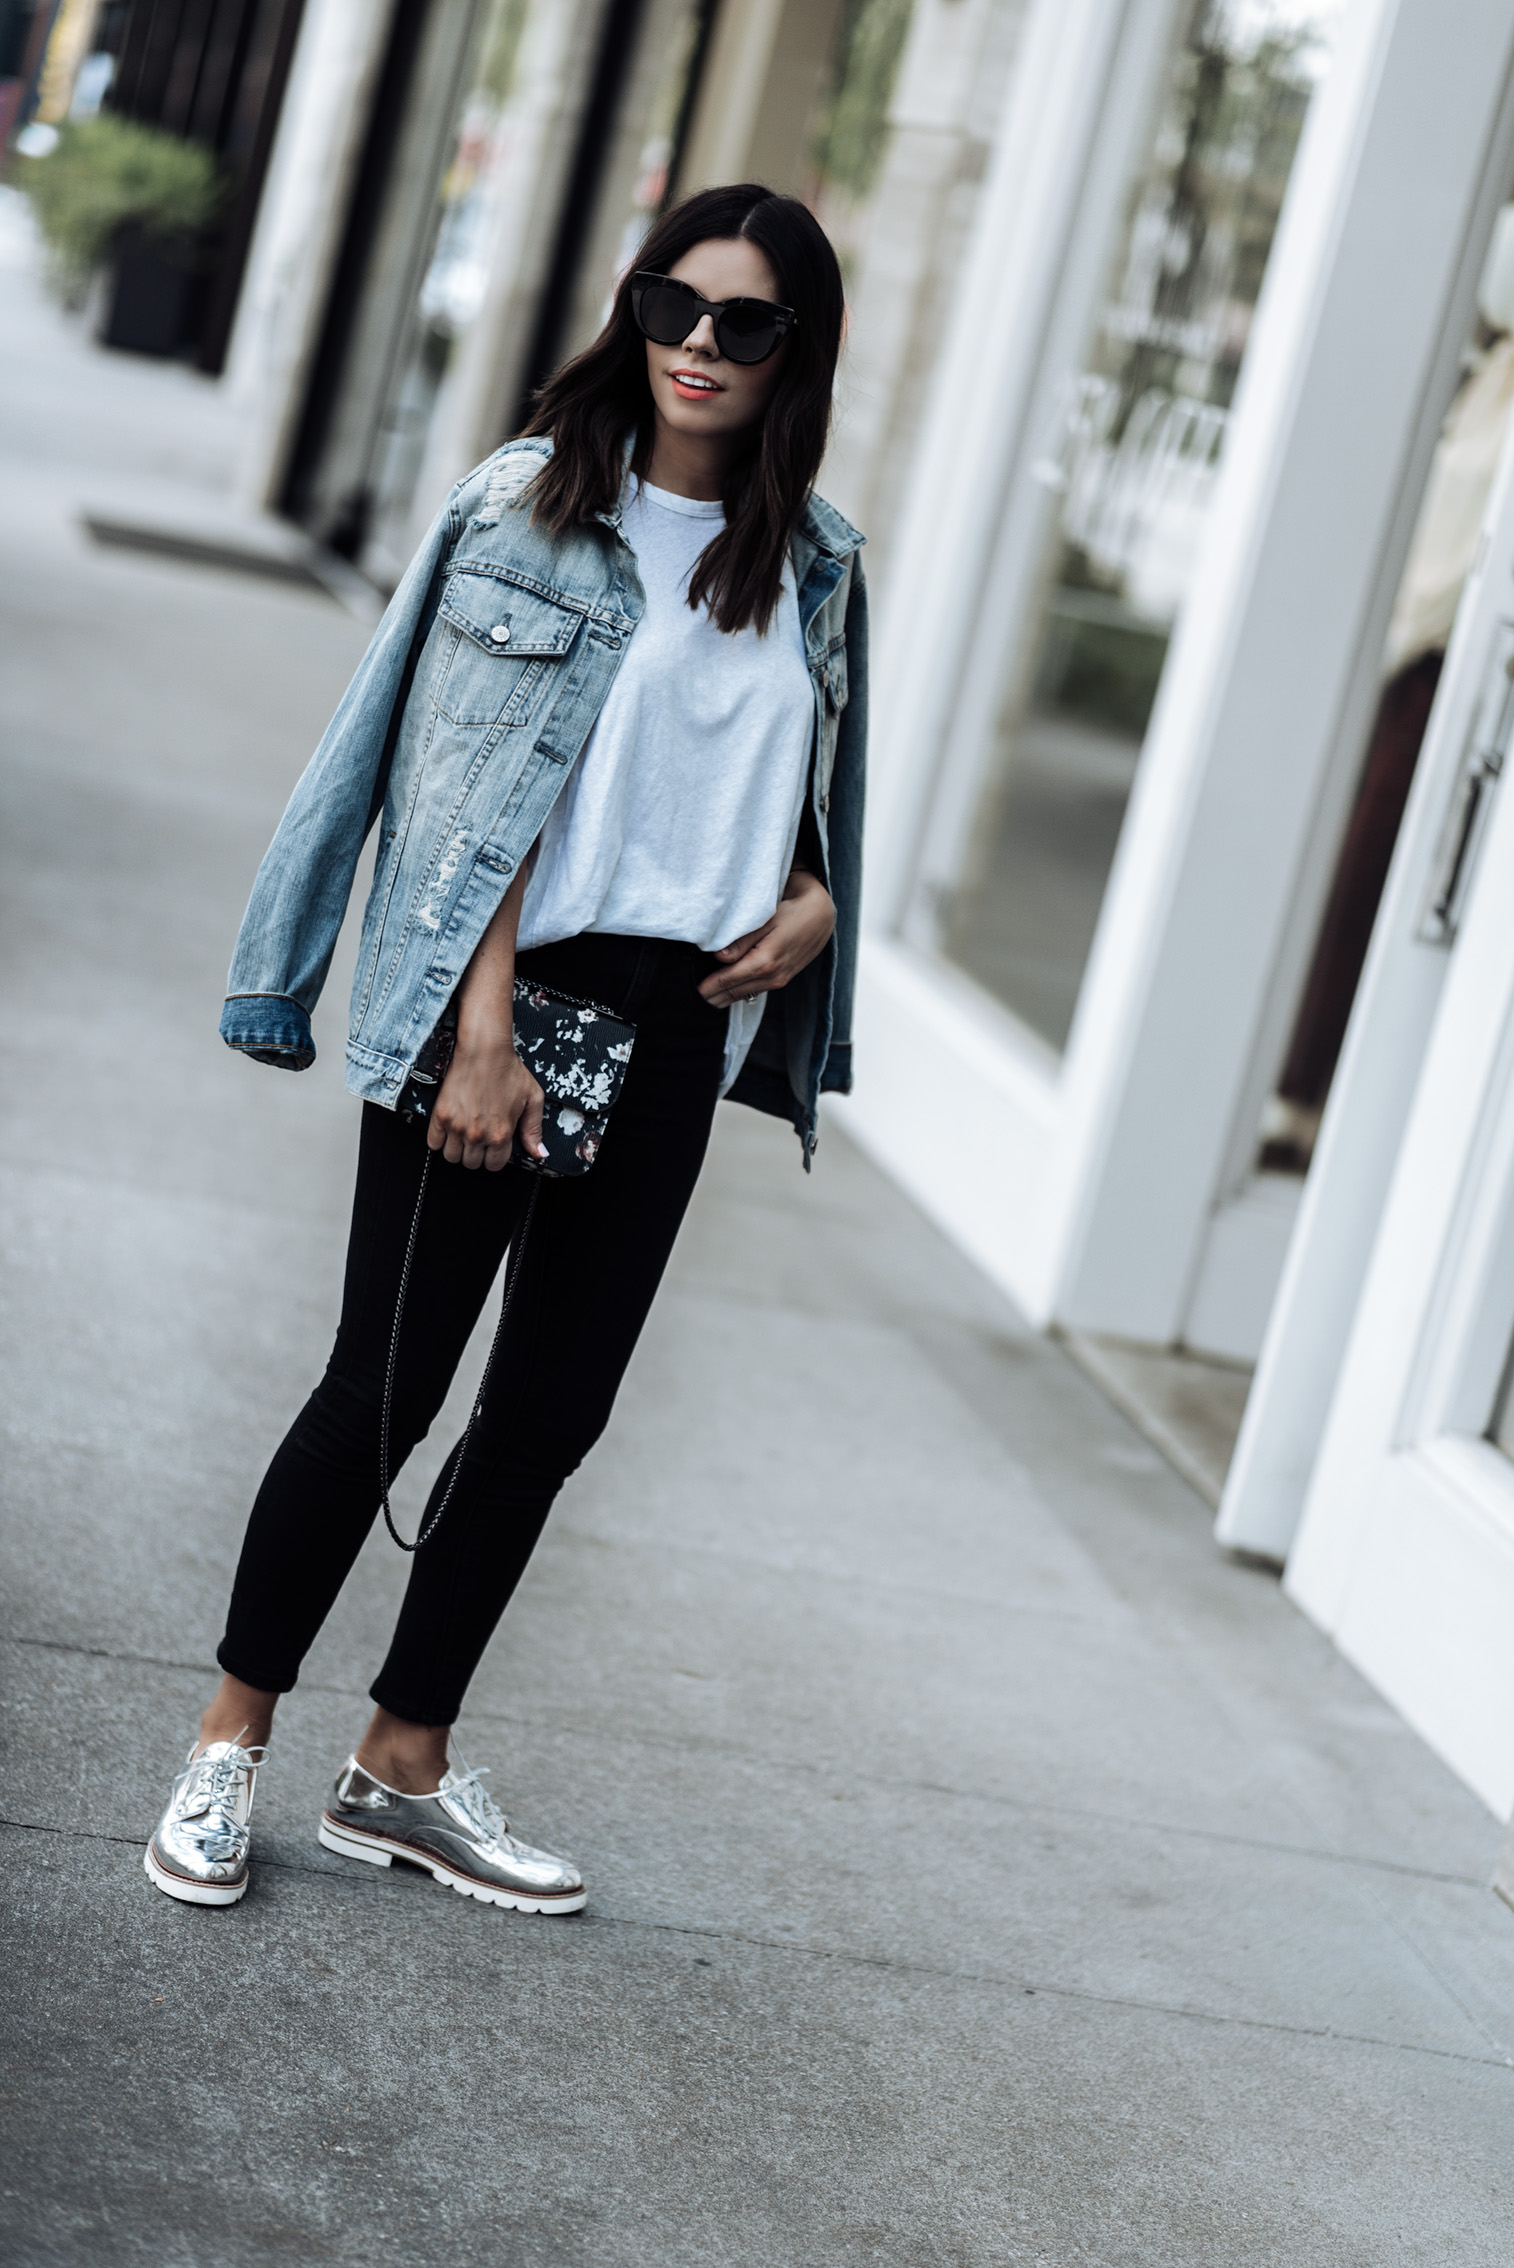 Fall denim with AG and Zappos | Denim jacket outfits | Floral Henri Bendel bag |Tiffany Jais fashion and lifestyle blogger of Flaunt and Center | Houston fashion blogger | Streetstyle blogger